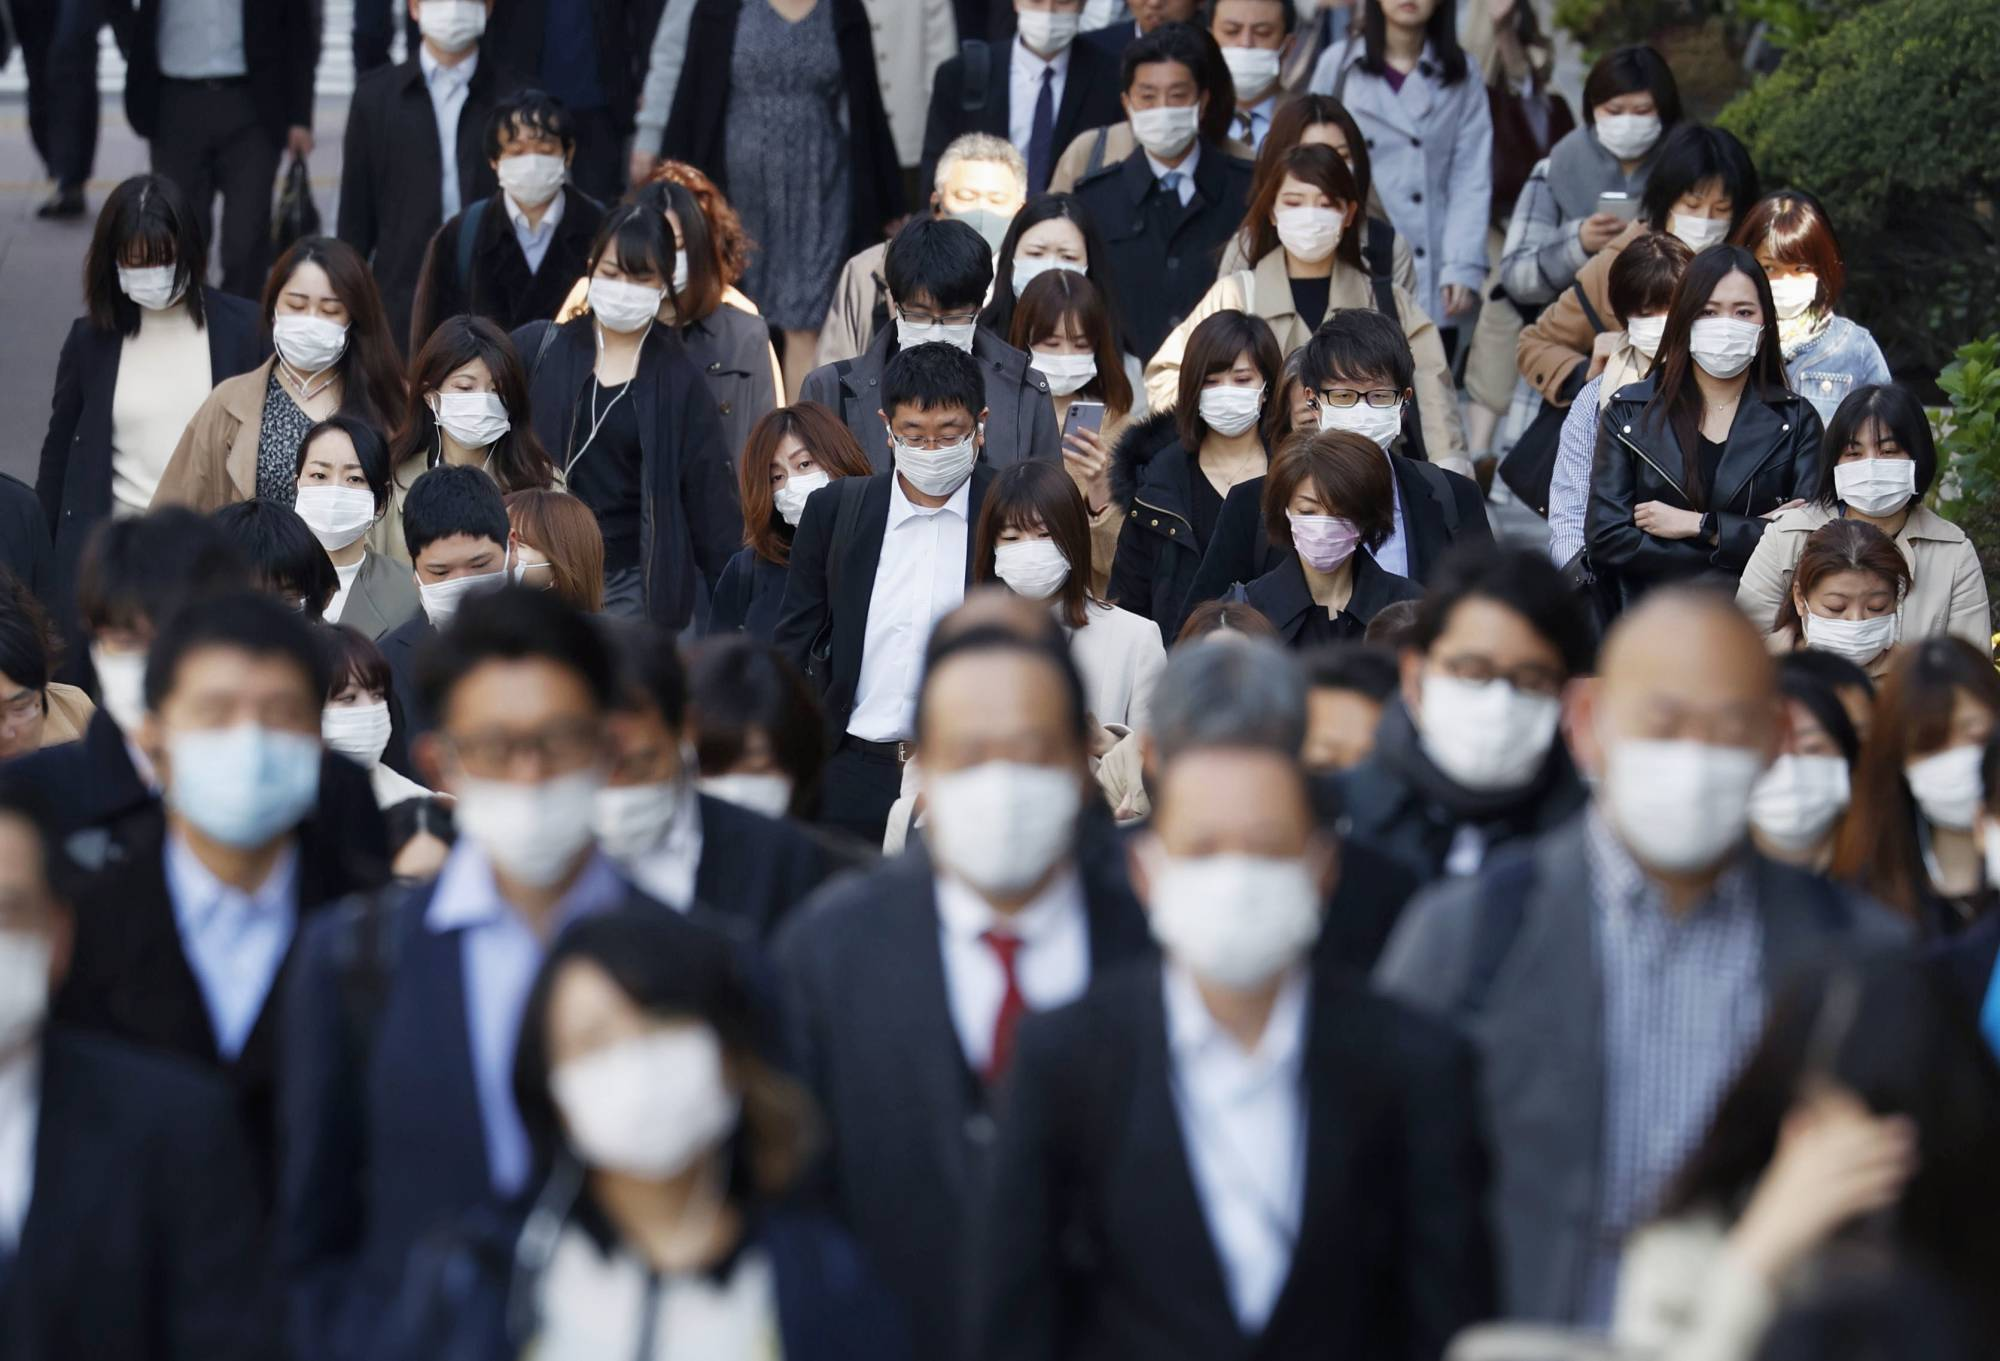 Experts are warning of a possible flu outbreak this season. | KYODO